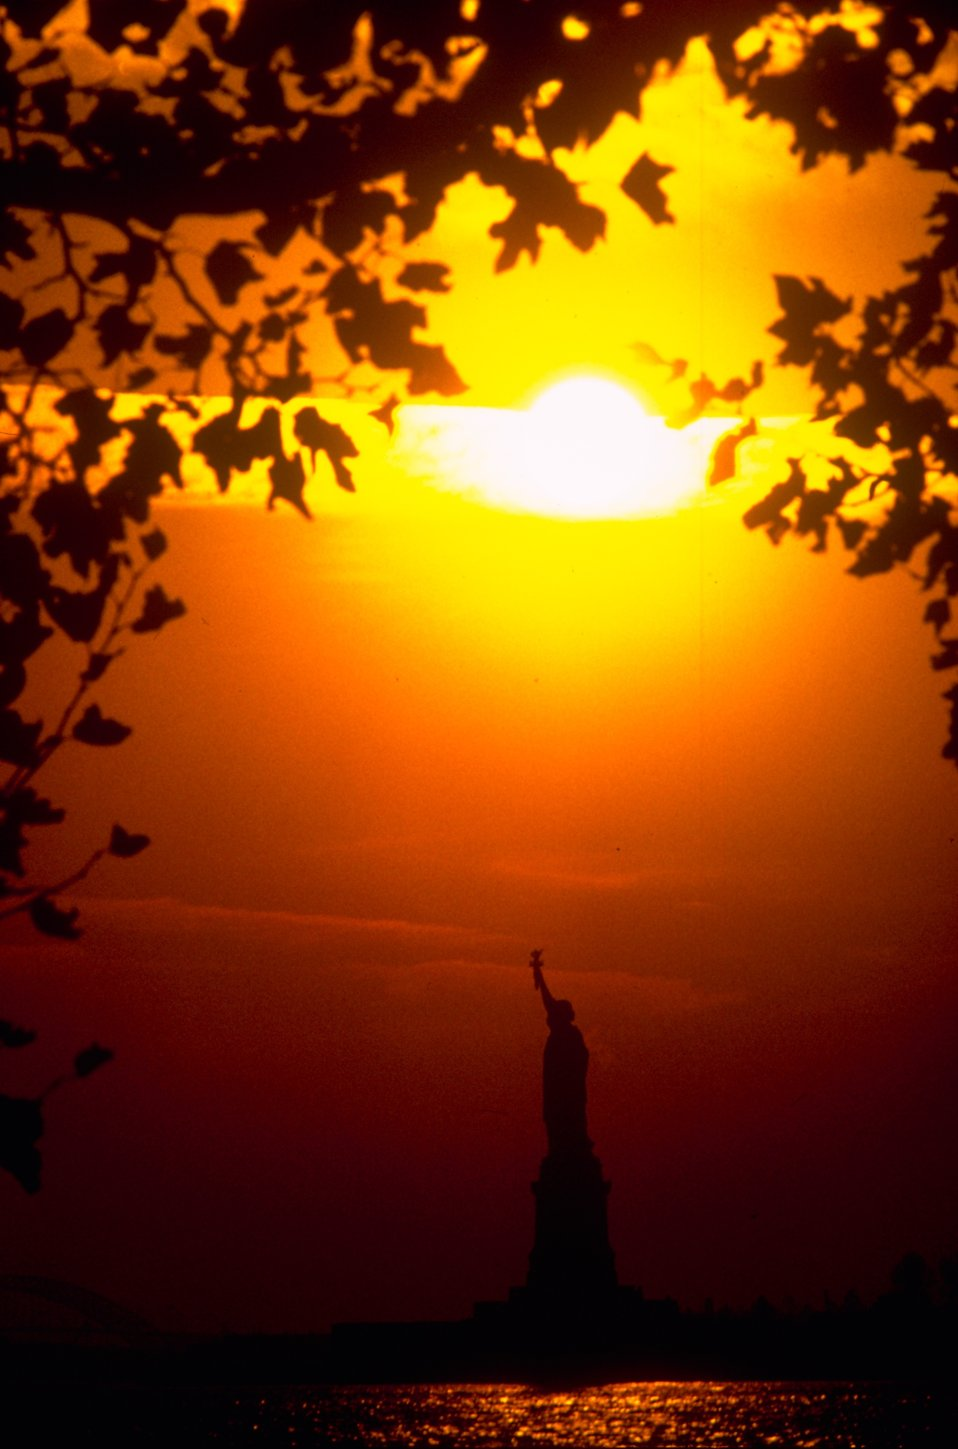 Silhouette of the Statue of Liberty monument on Liberty Island at sunset : Free Stock Photo